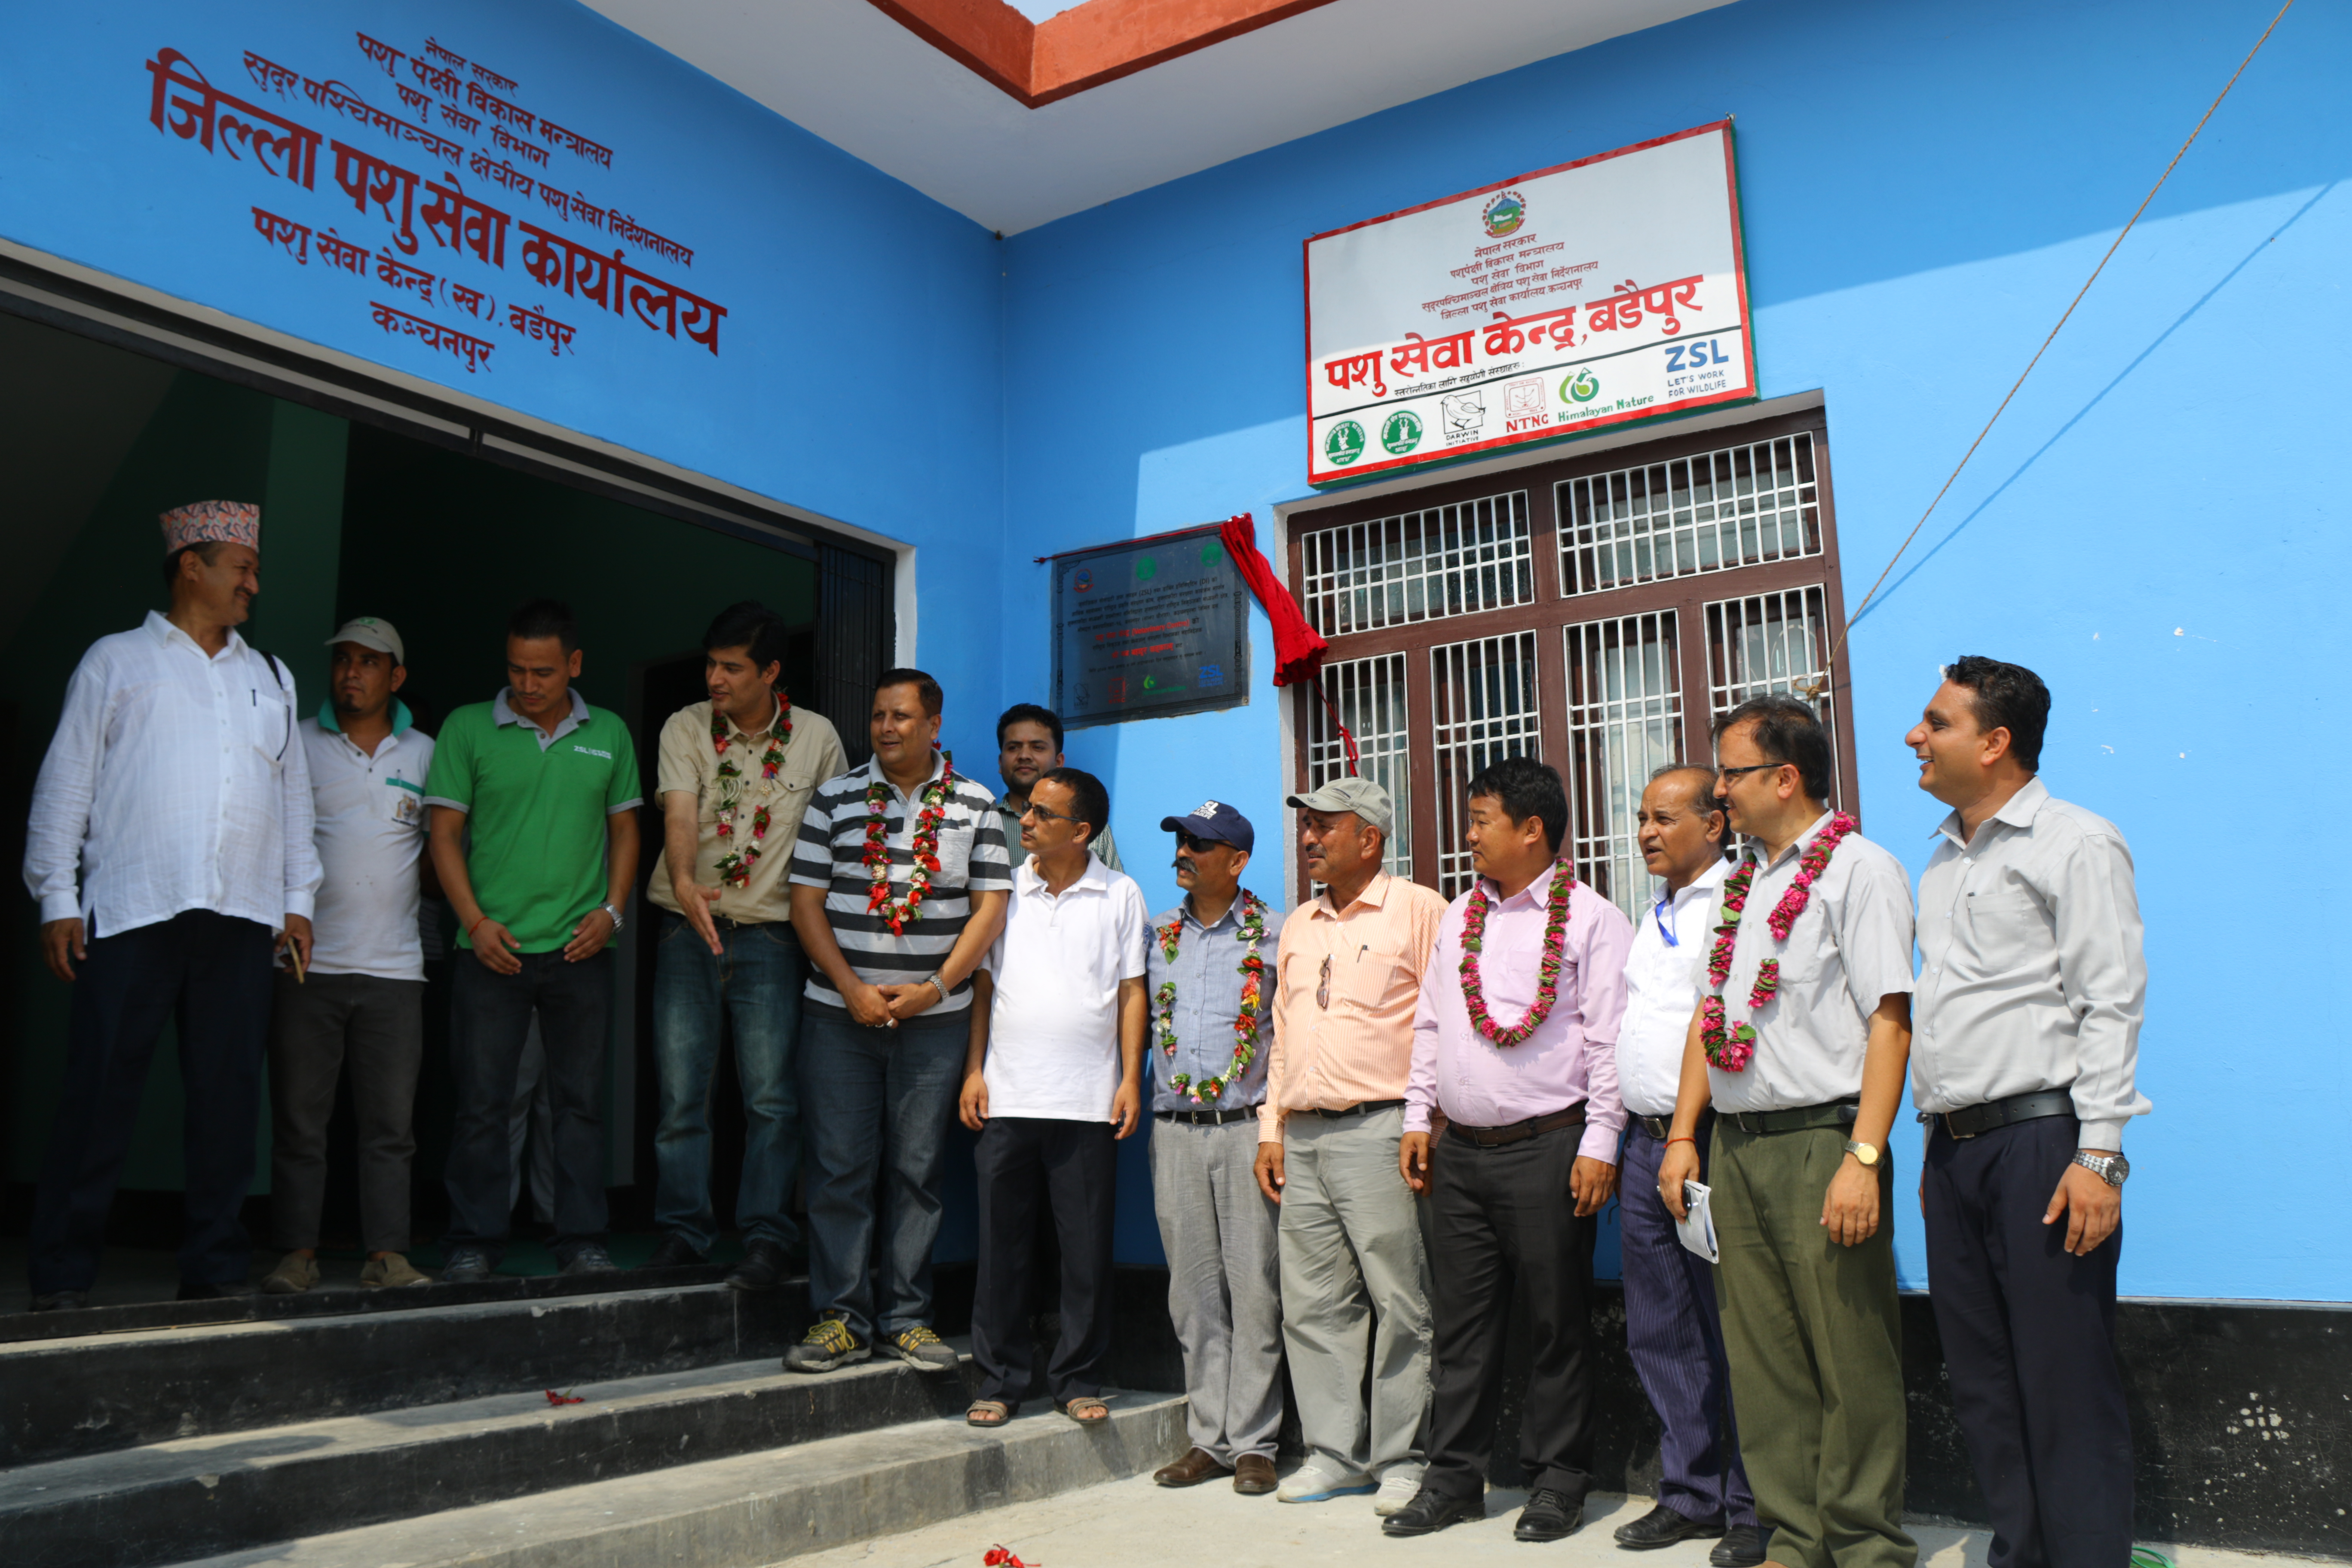 Nepal 22-009 Inauguration of Darwin Initiative supported veterinary centre, Credit - ZSL